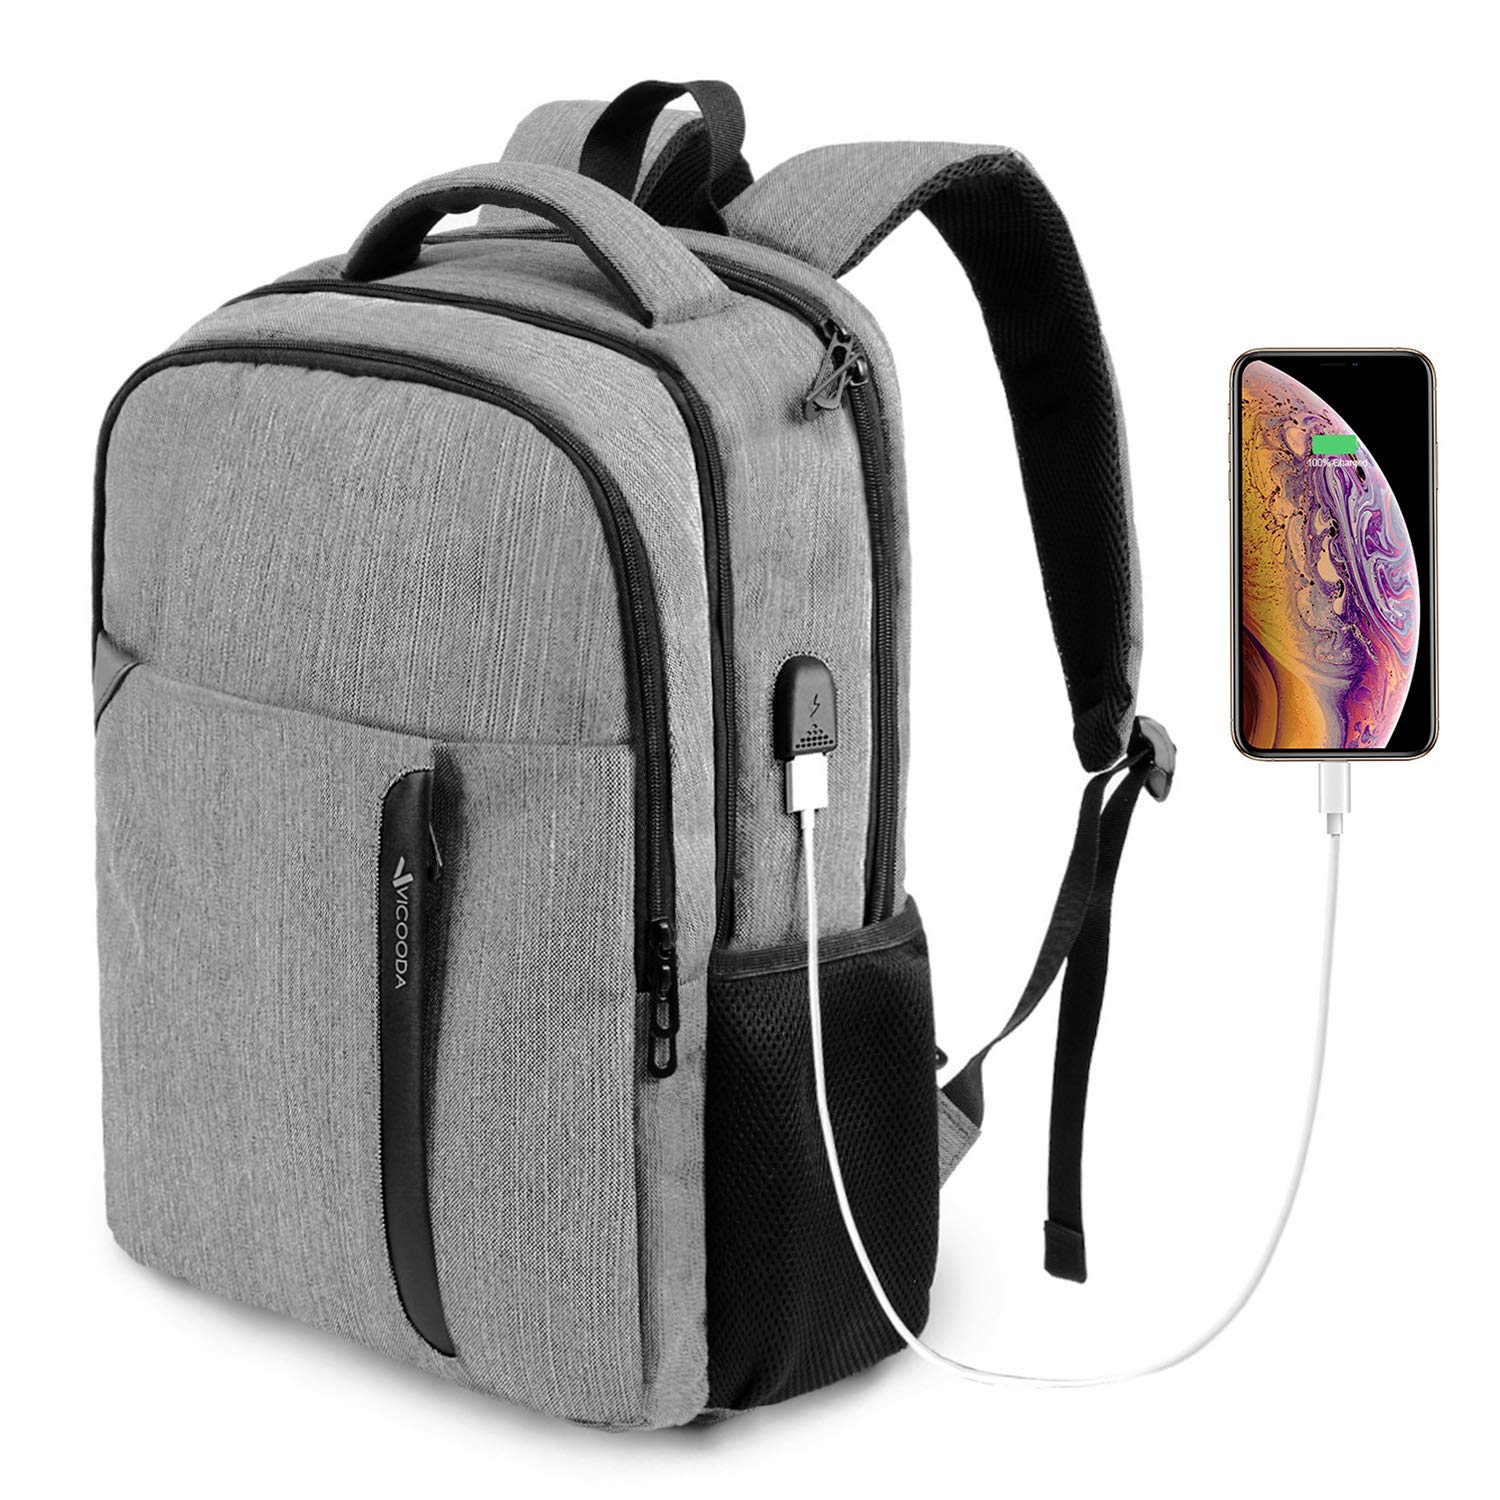 VICOODA Travel Laptop Backpack with USB Charging Port,Business Anti Theft Durable Laptops Backpack for Women Men,School College- Fits 15.6 Inch Laptop and Notebook